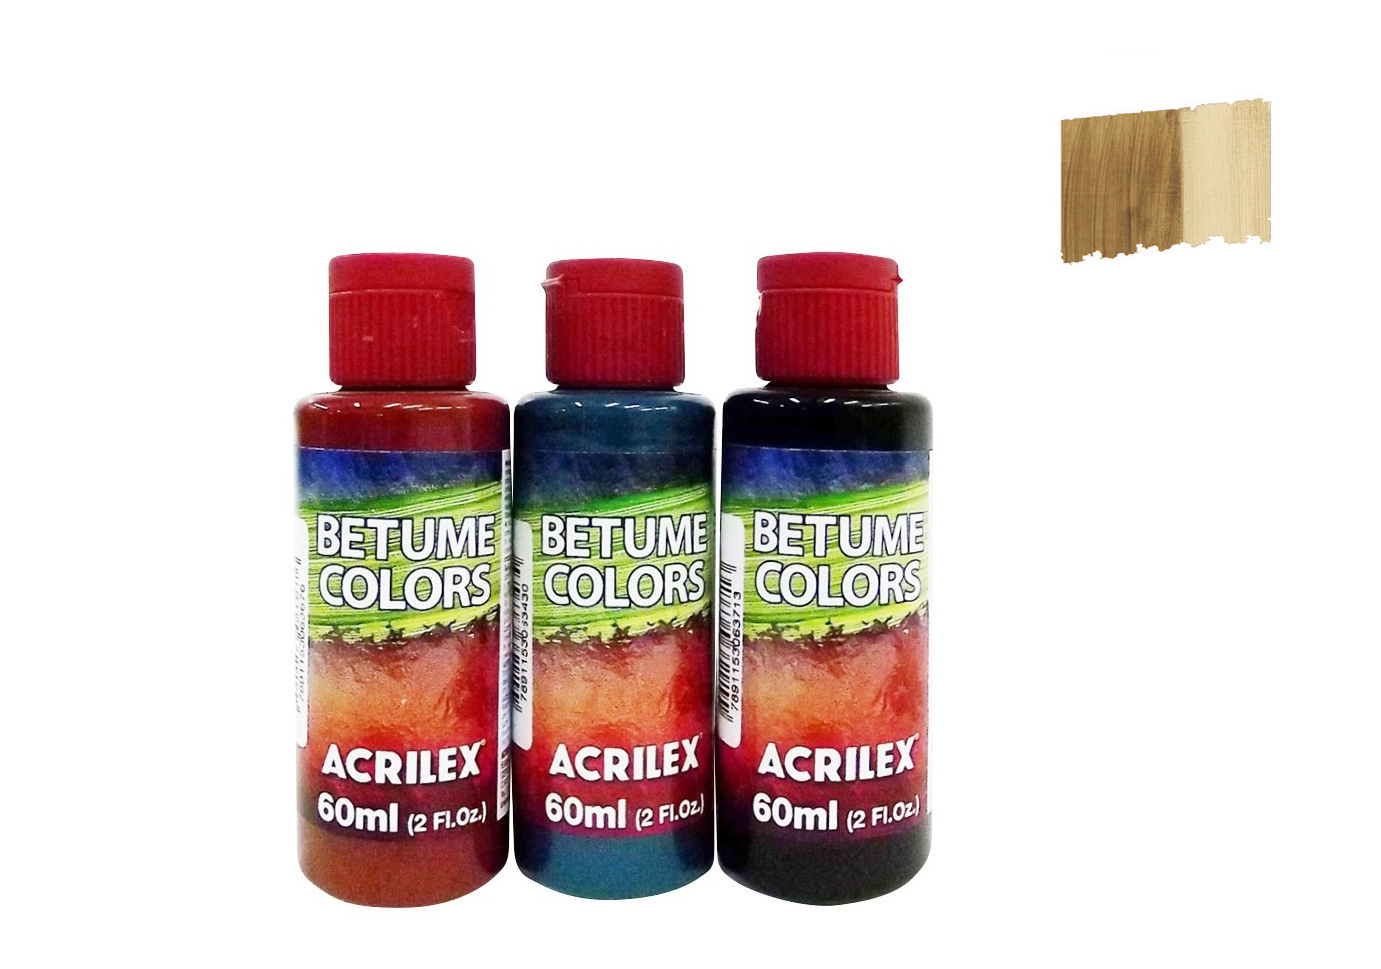 BETUME COLORS 60ML MAHOGANY 21660958 ACRILEX